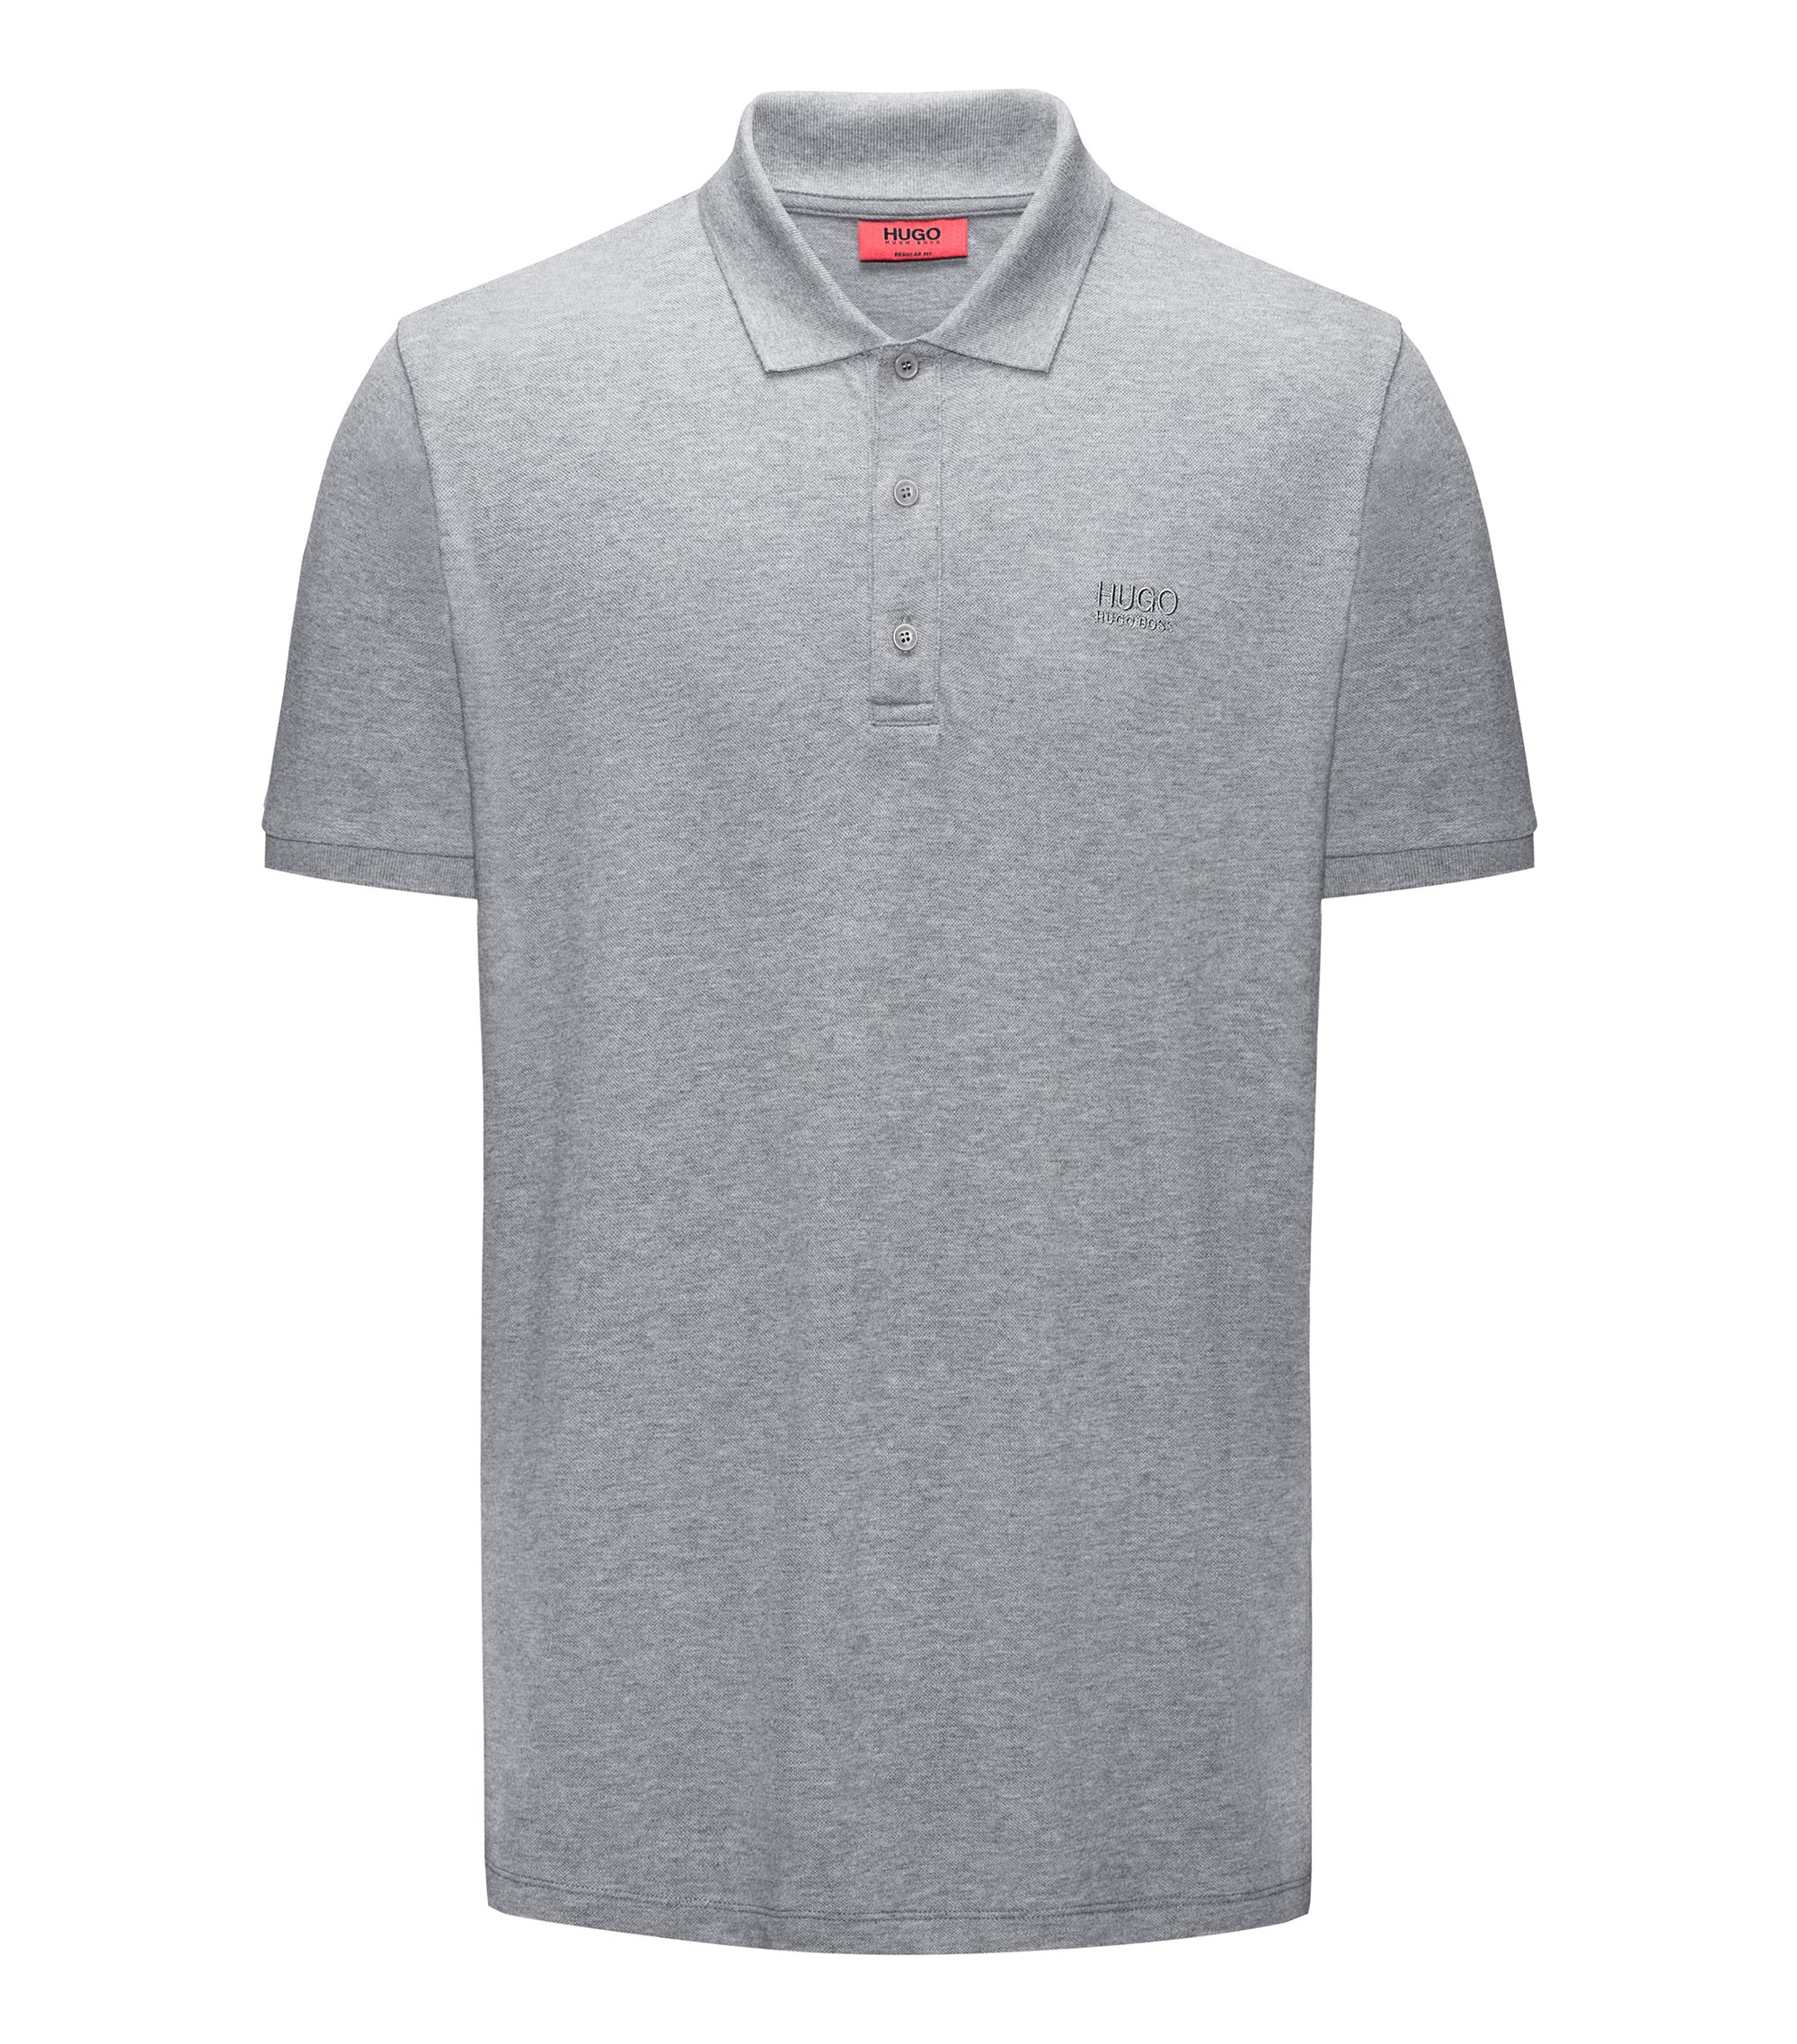 Regular-Fit Poloshirt aus softer Baumwolle, Grau